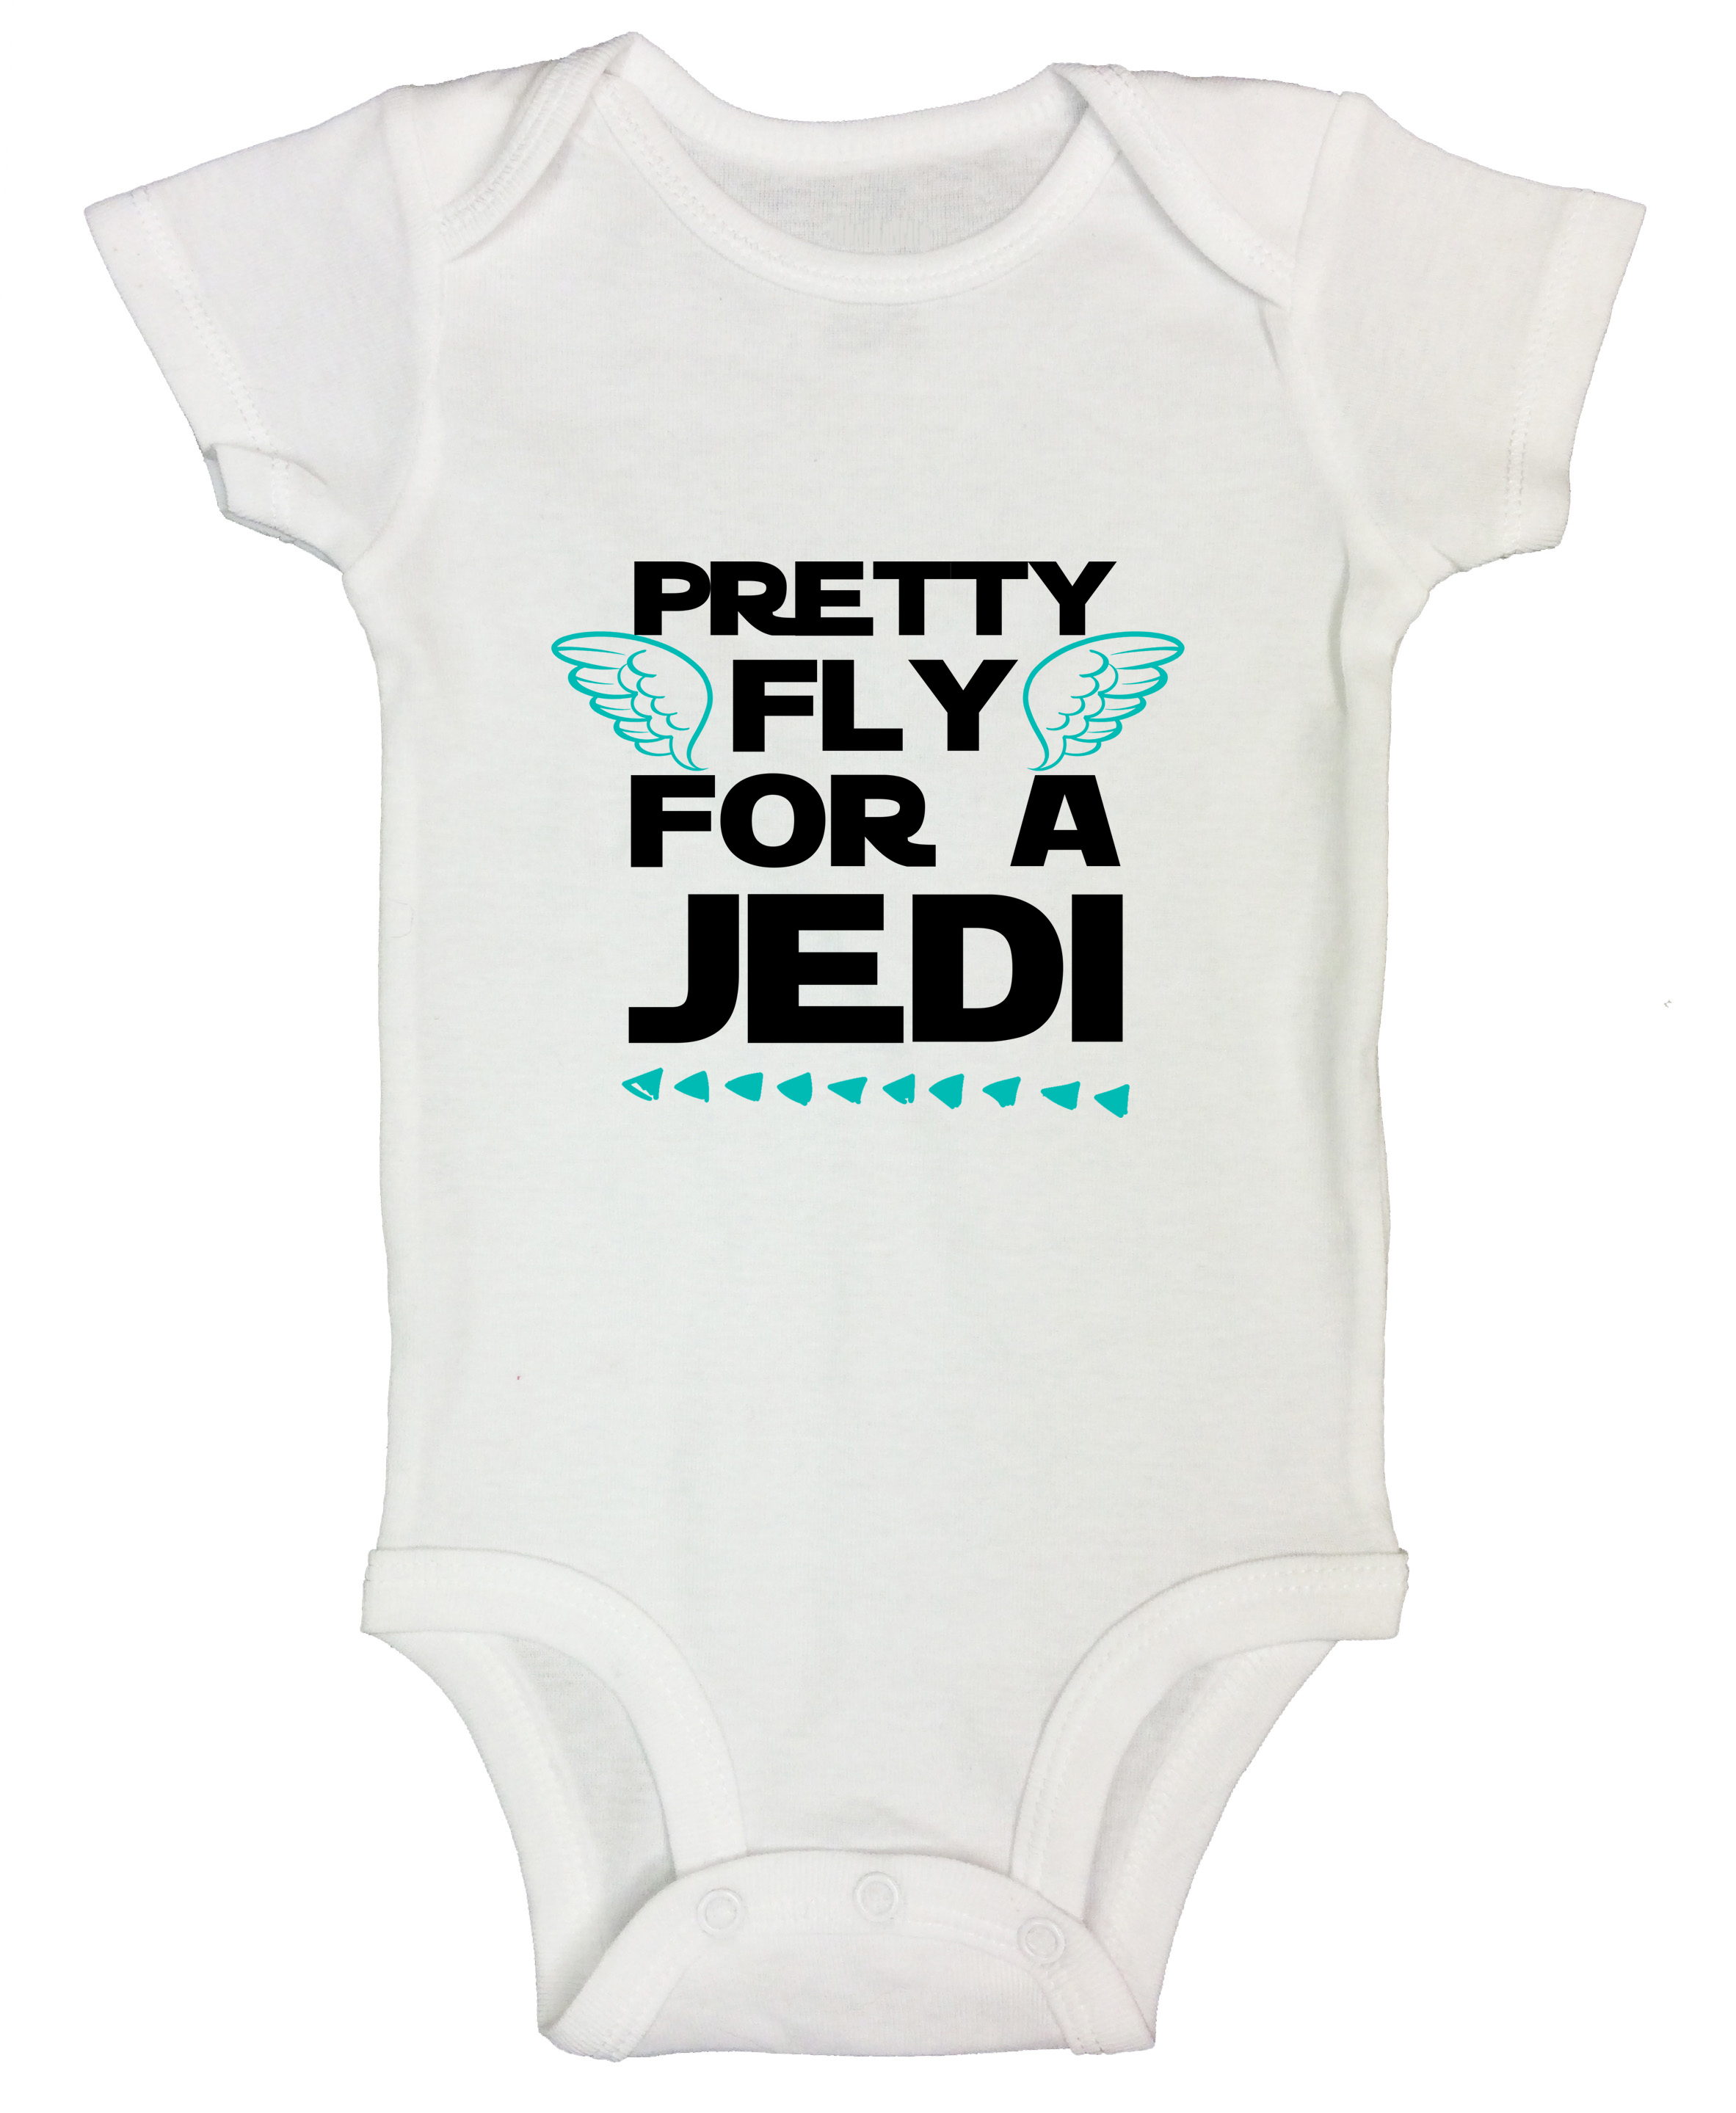 Pretty Fly for a Jedi Kids T-shirt Children Top Toddler Top Star Wars Inspired